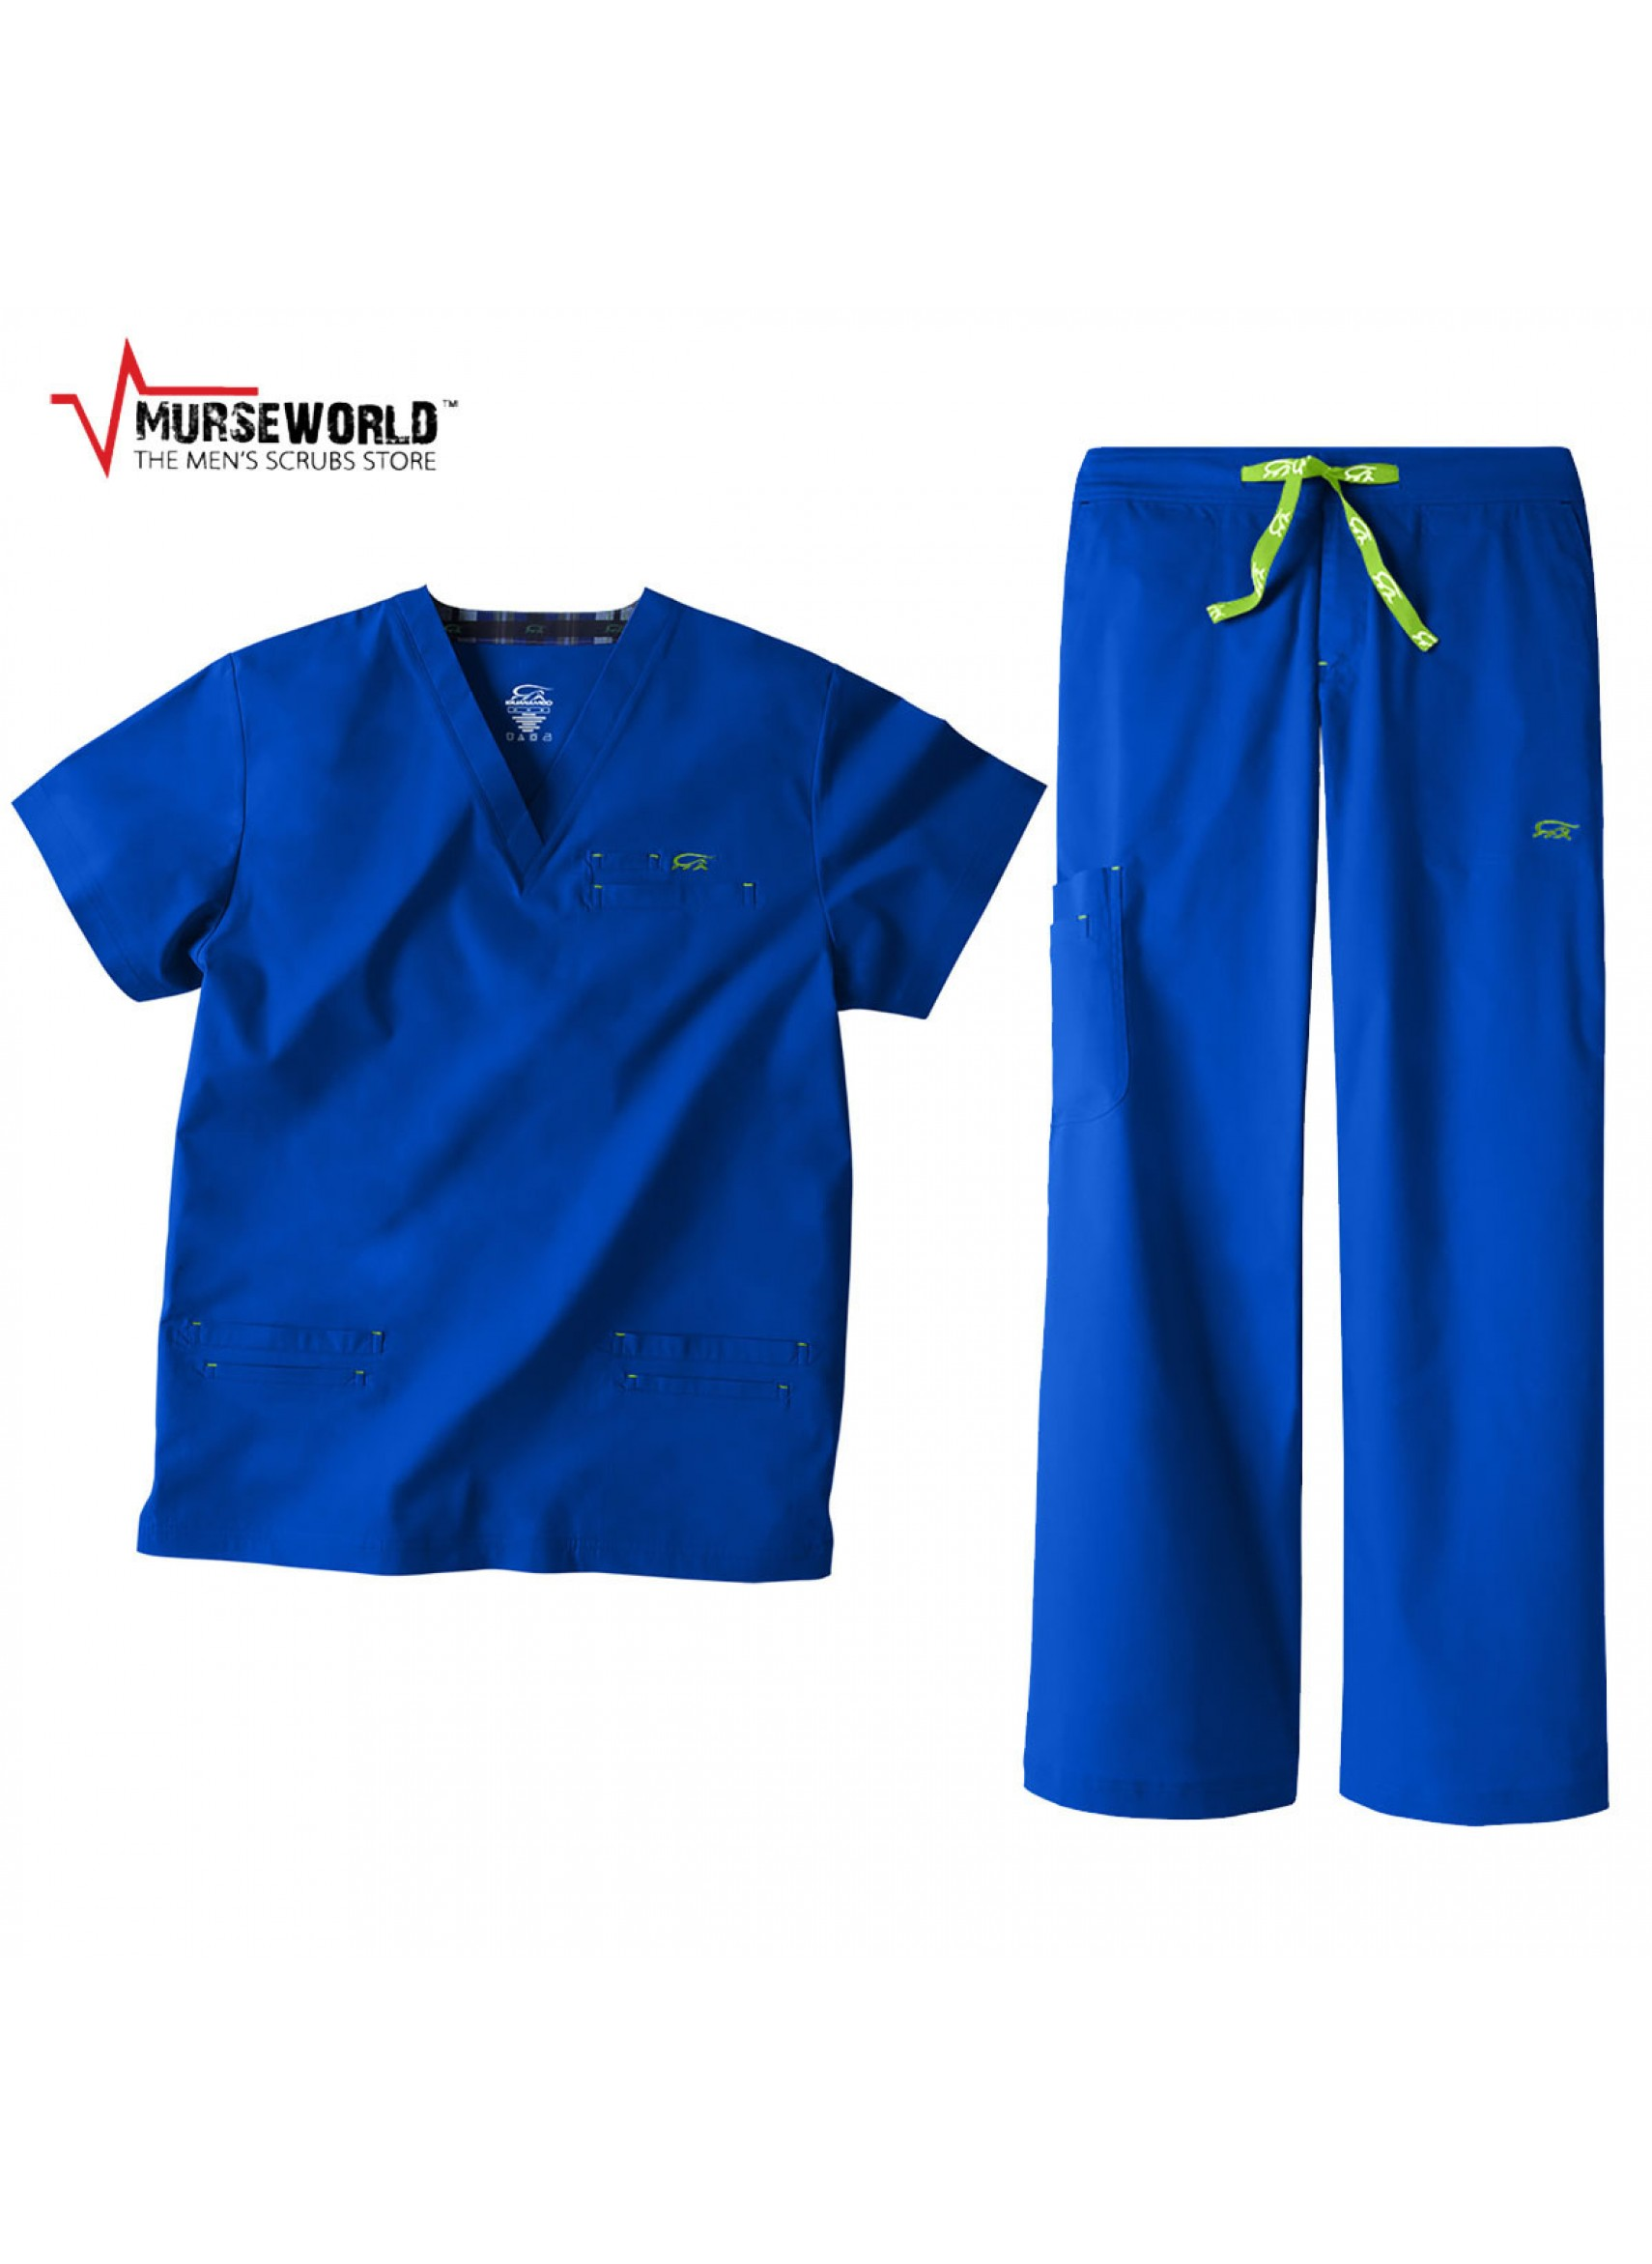 eefc3d5b815 20% off all Dickies Scrubs! Use code DICKIES20 at checkout!